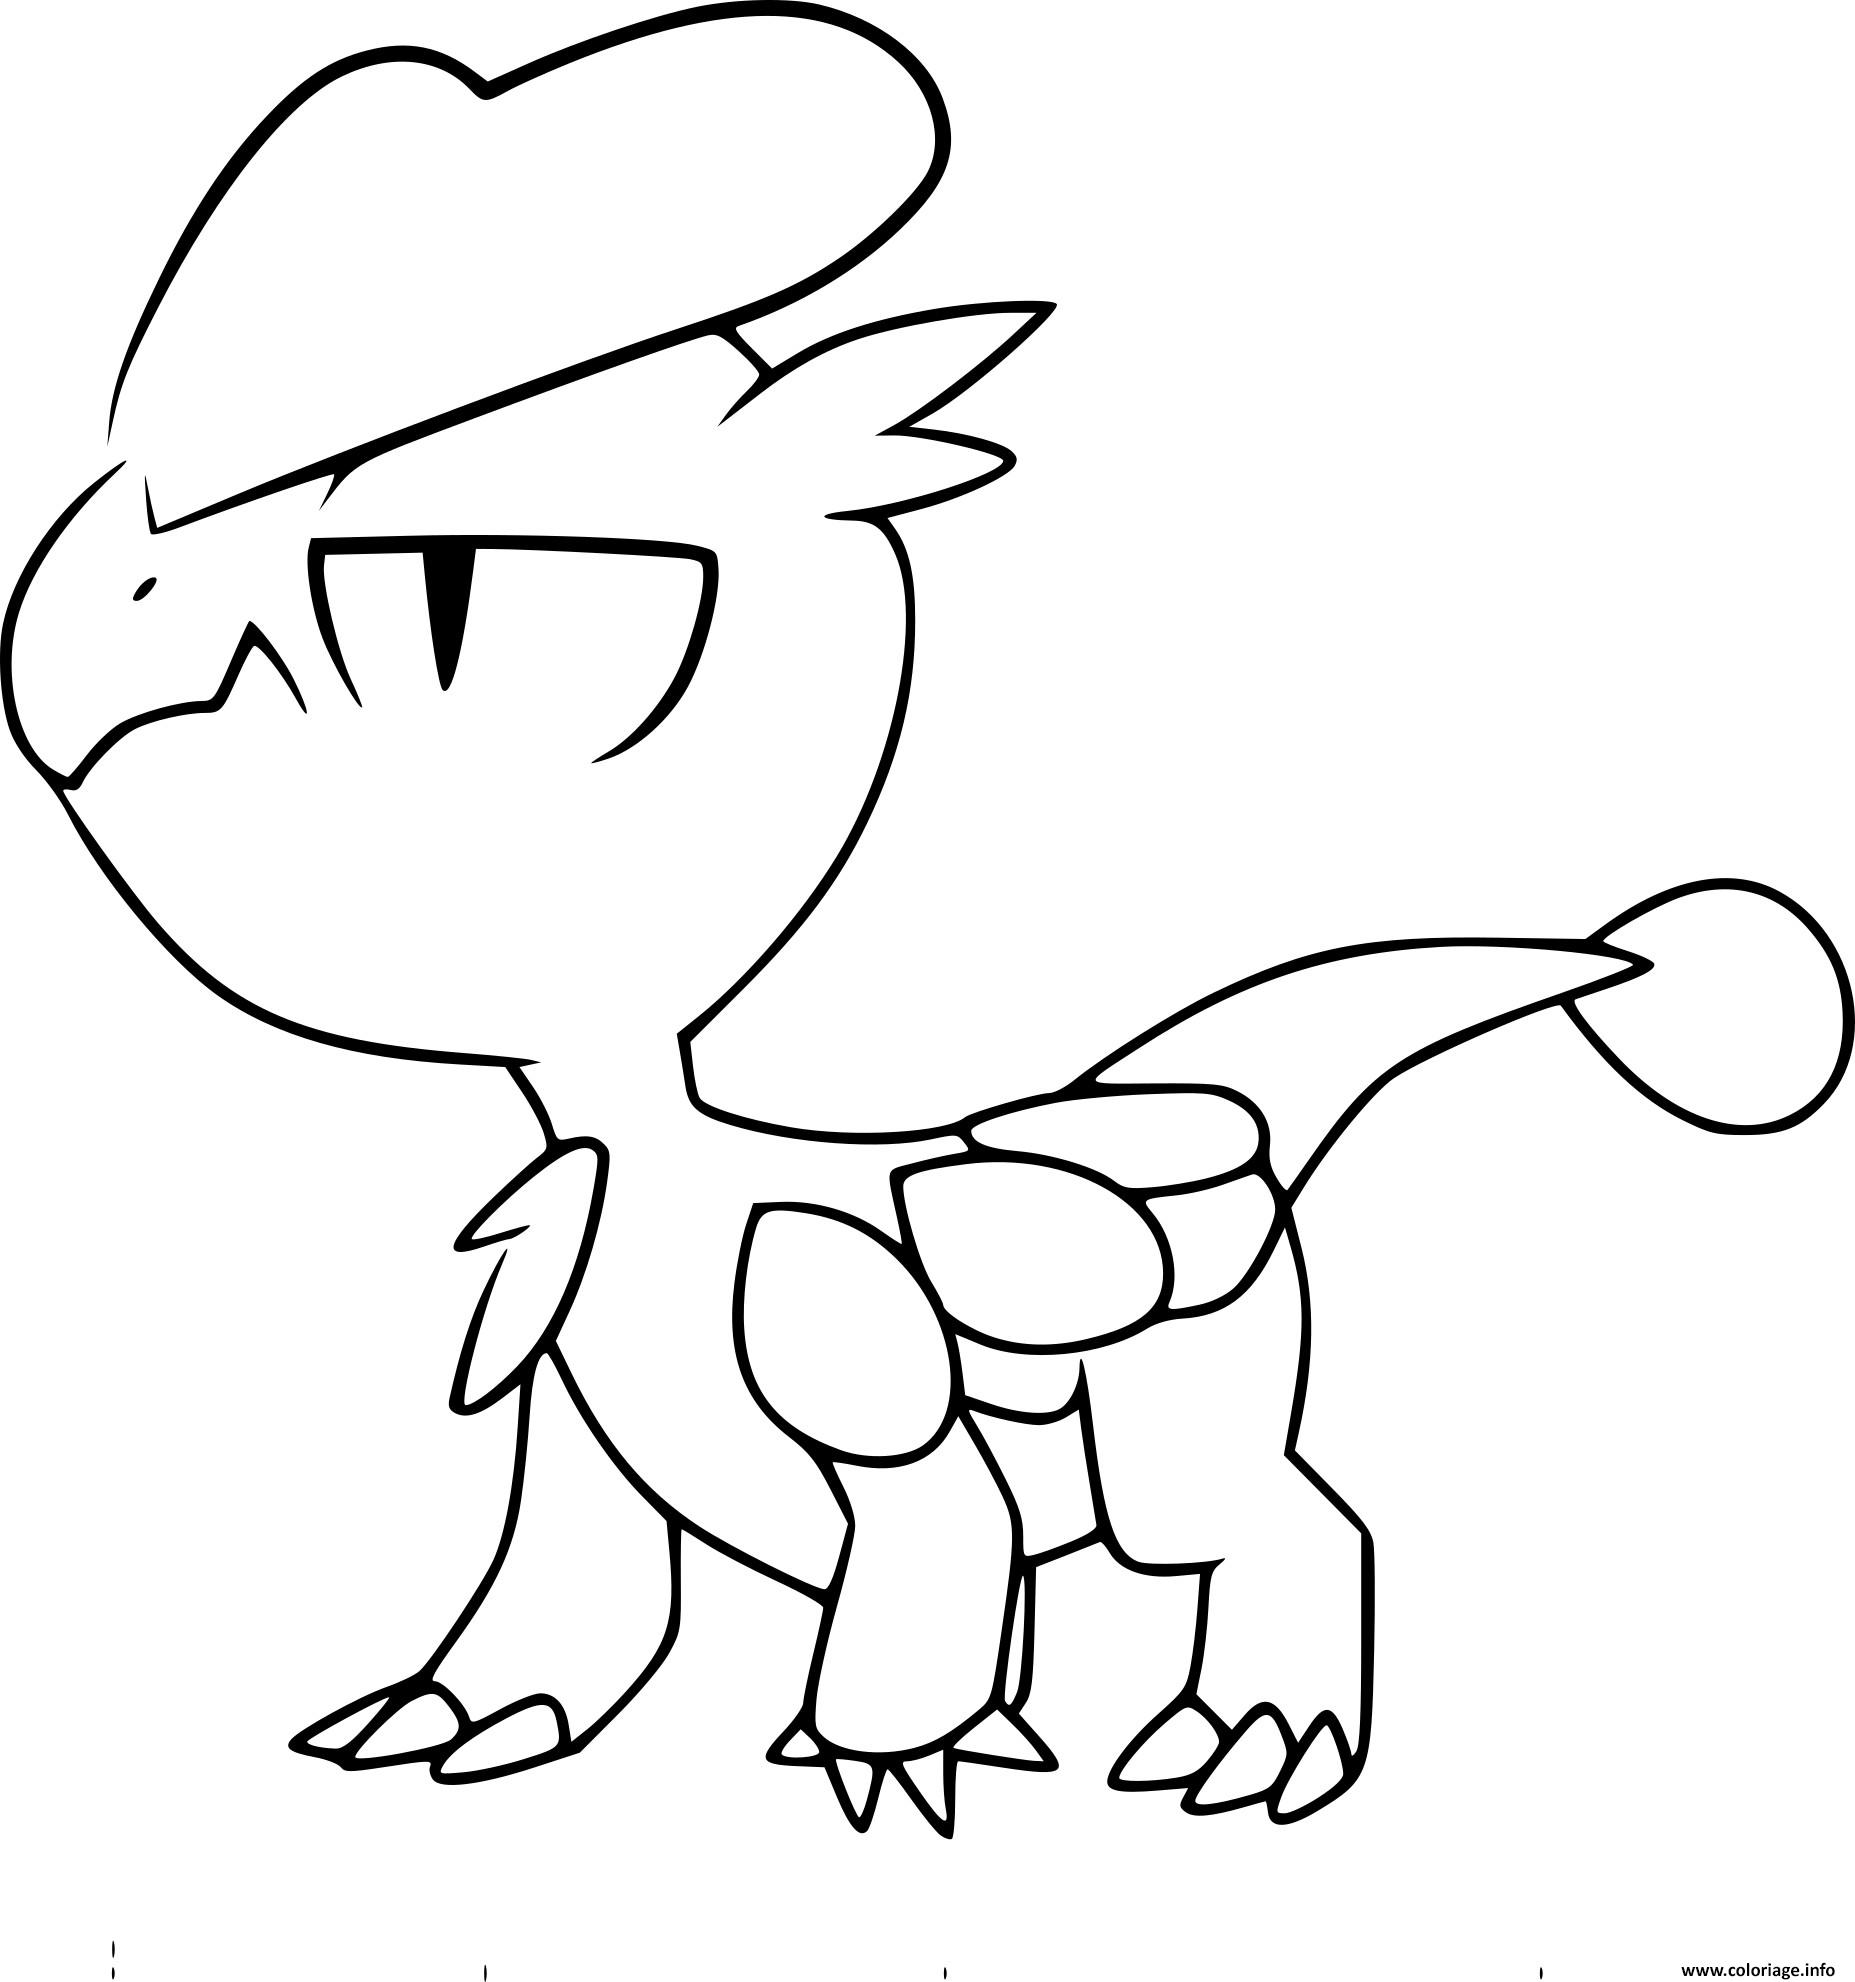 Coloriage pokemon xy bebecaille - Dessiner un pokemon ...